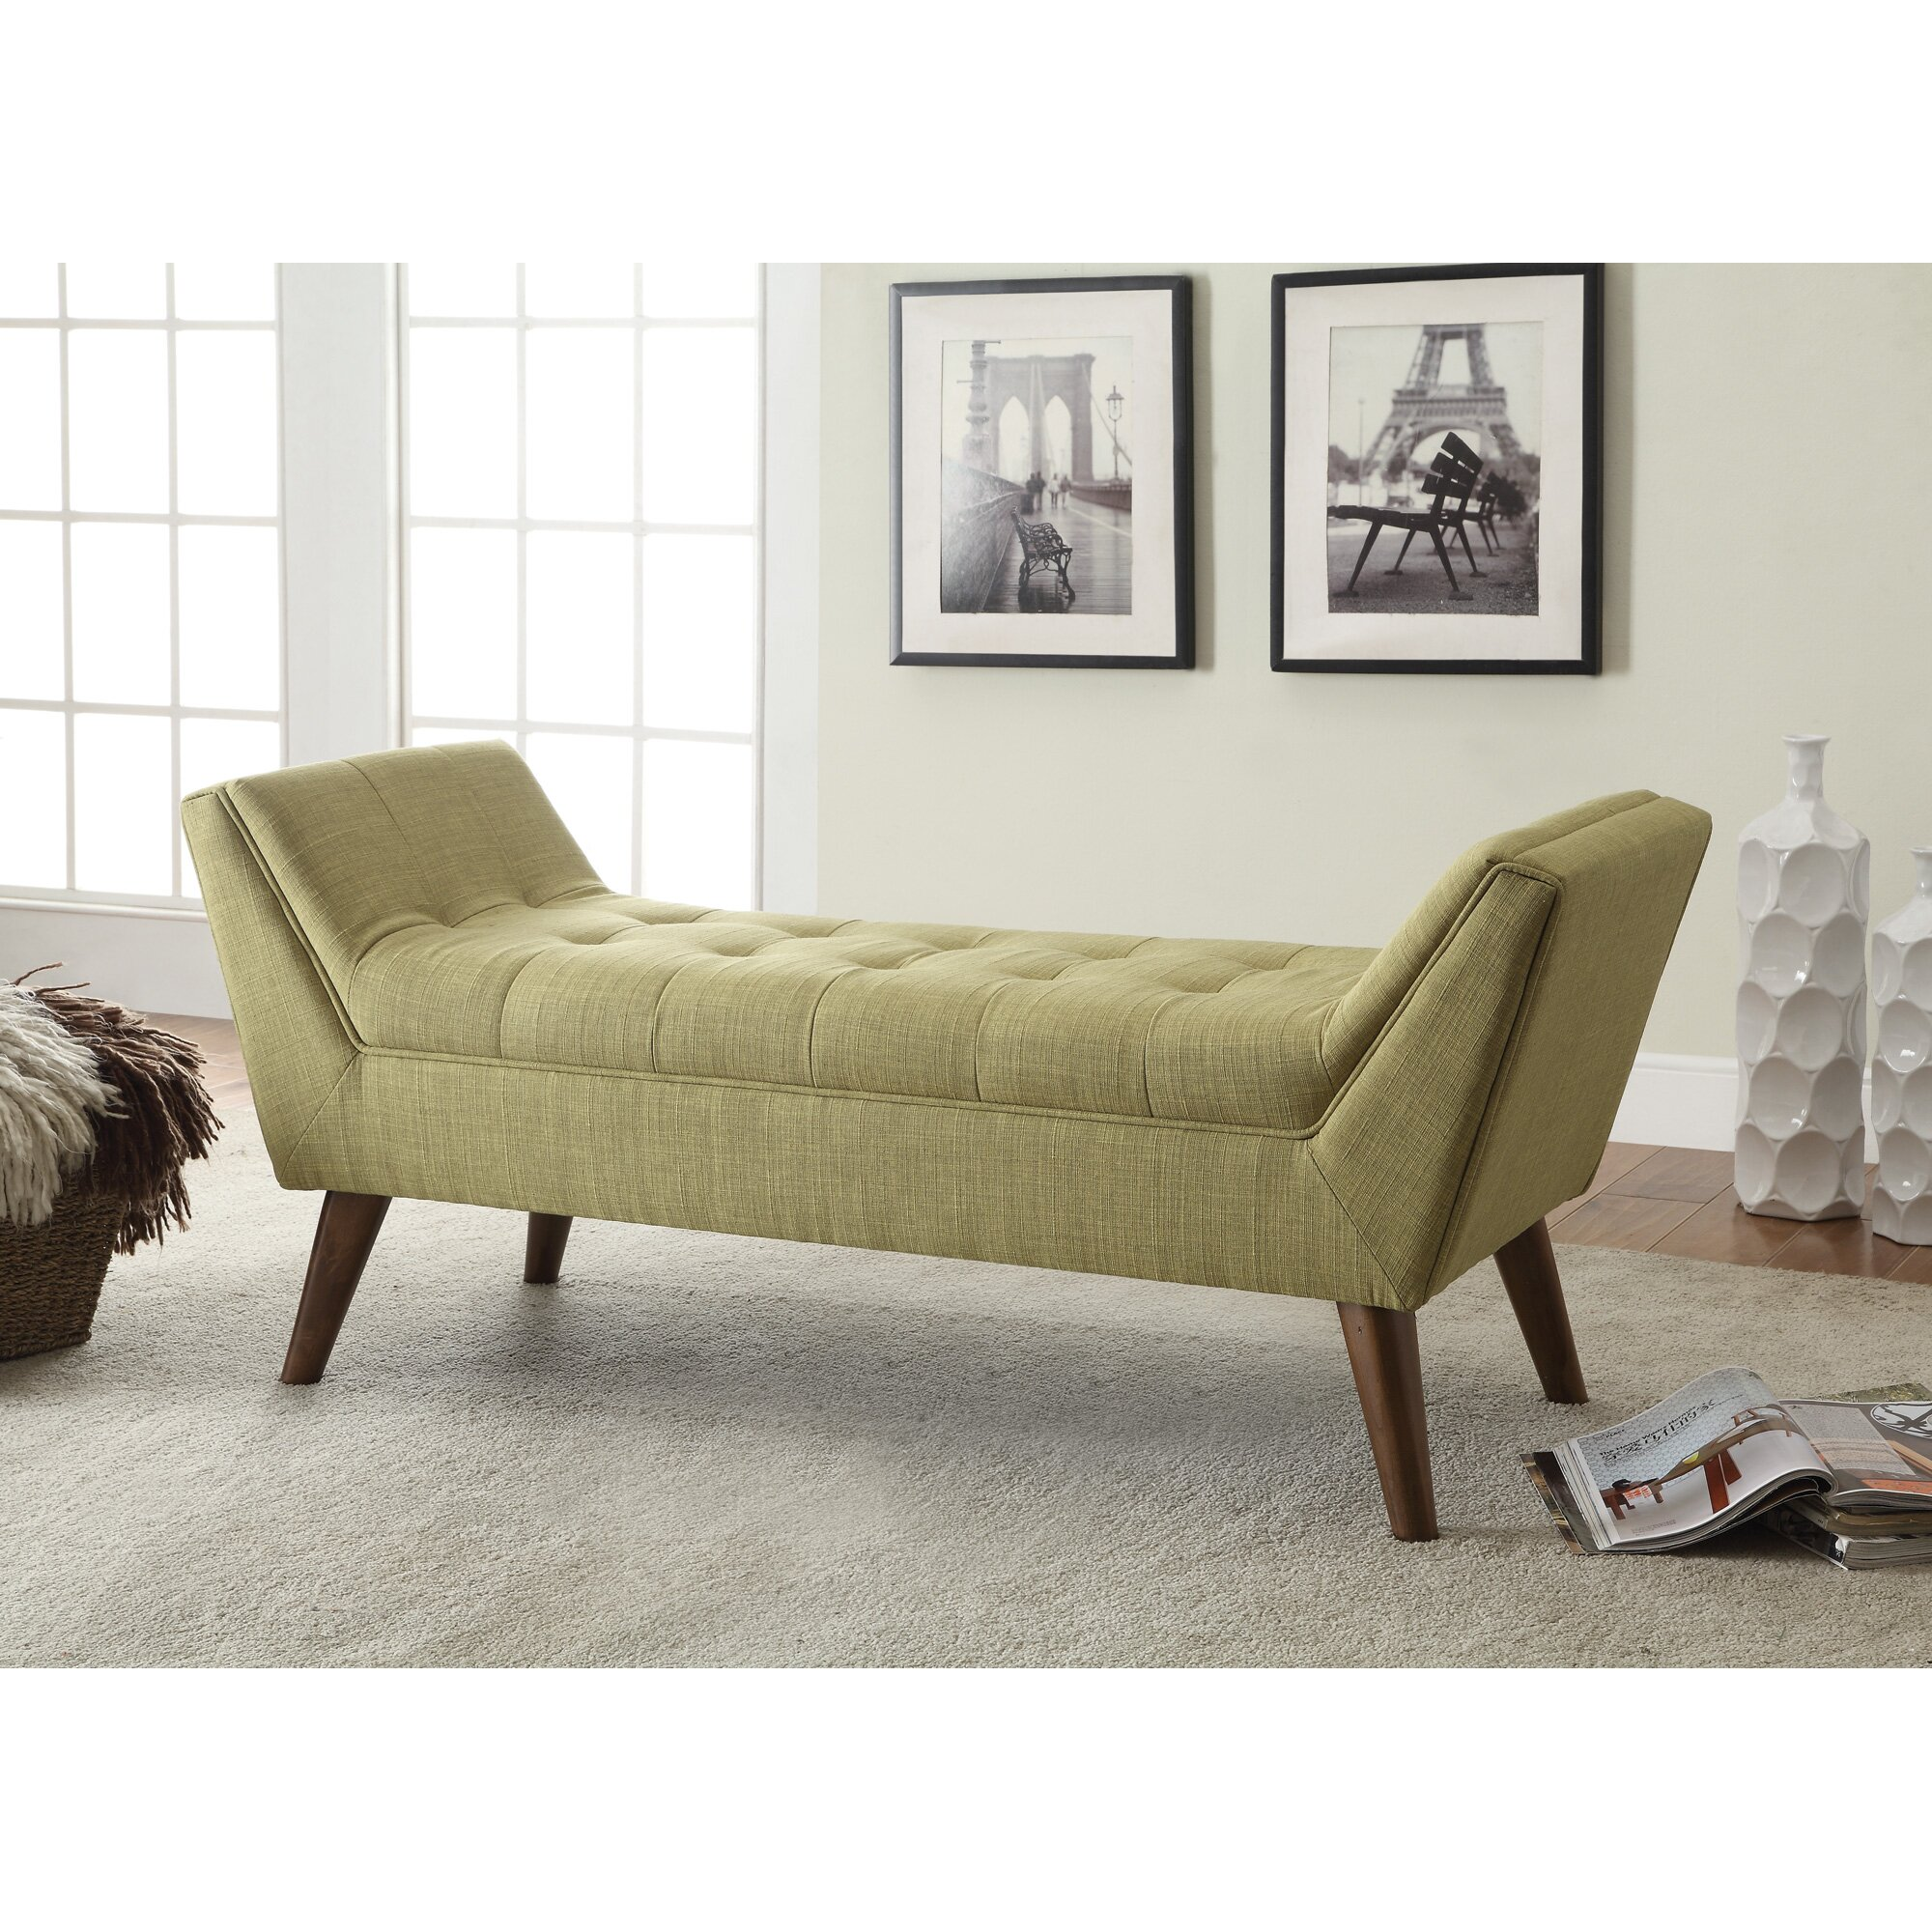 Bedroom bench with arms - Langley Street Serena Upholstered Bedroom Bench Reviews Wayfair